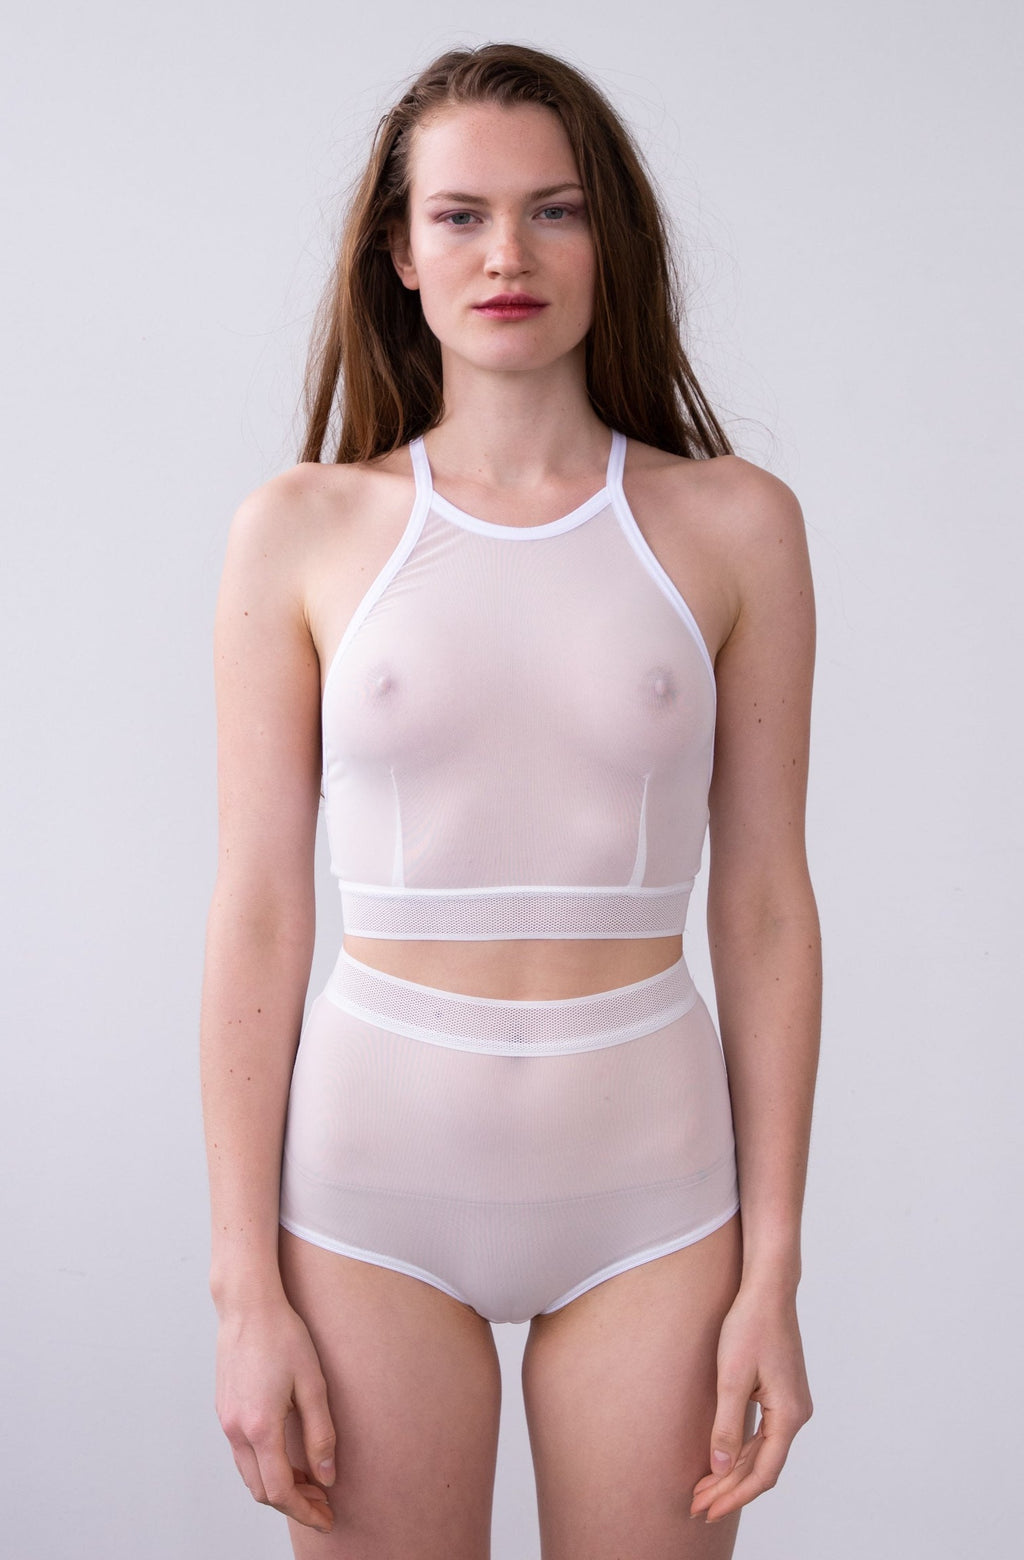 Leeda: brief - HIGH WAISTED BRIEF IN WHITE MESH